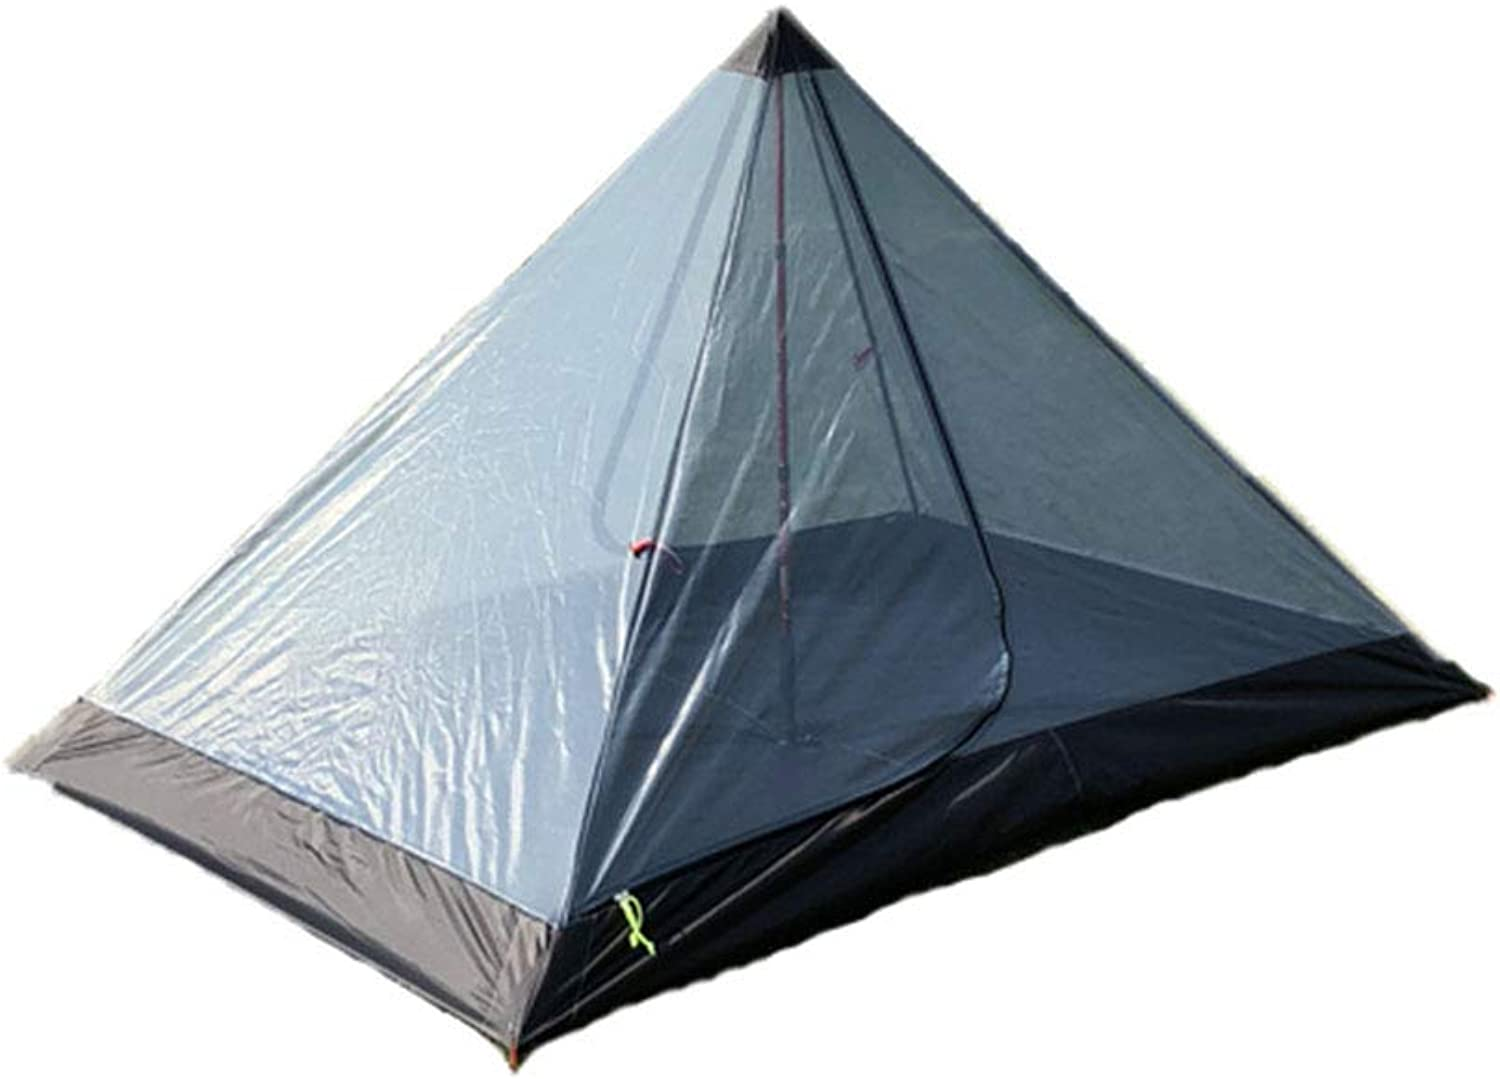 Mesh Tent A Type Pyramid Mosquito Shelter Outdoor Ultralight 2 Person Perfect for Camping Backpacking Hiking (Trekking Pole is Not Included)